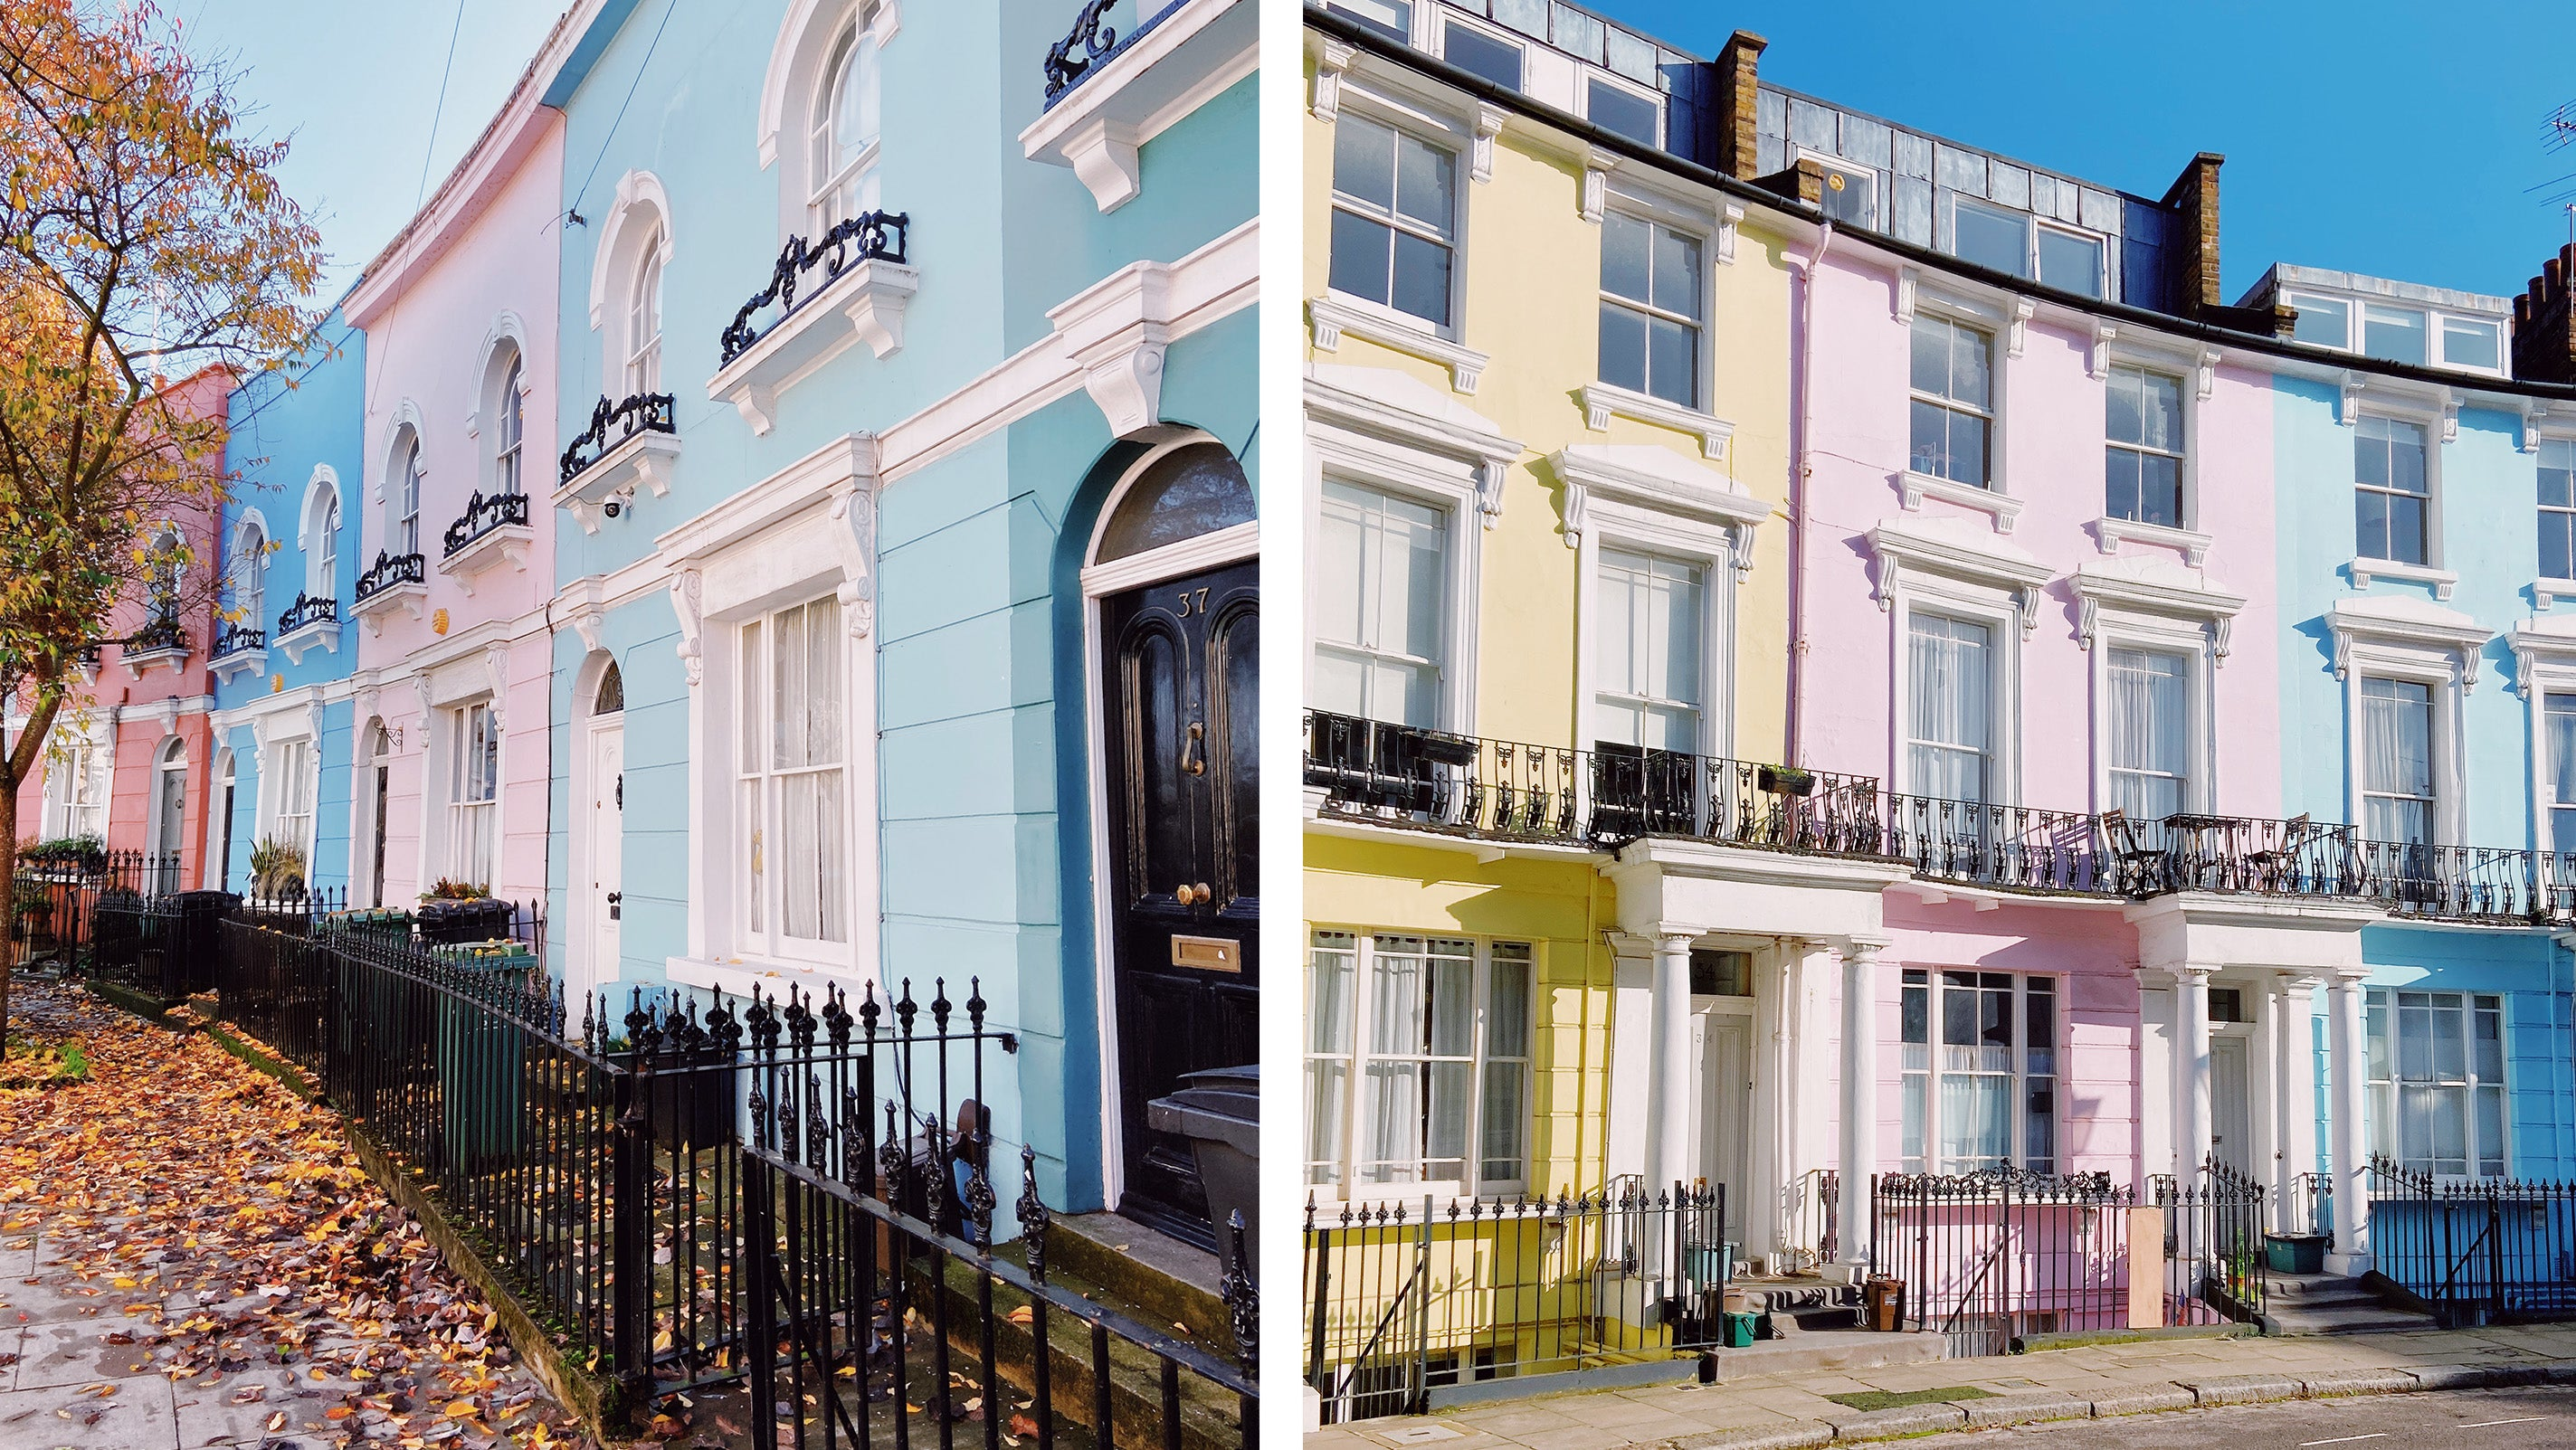 North London Kentish Town Kelly Street Colourful Houses Falkland Road Chalcot Crescent Daytrip Things To Do